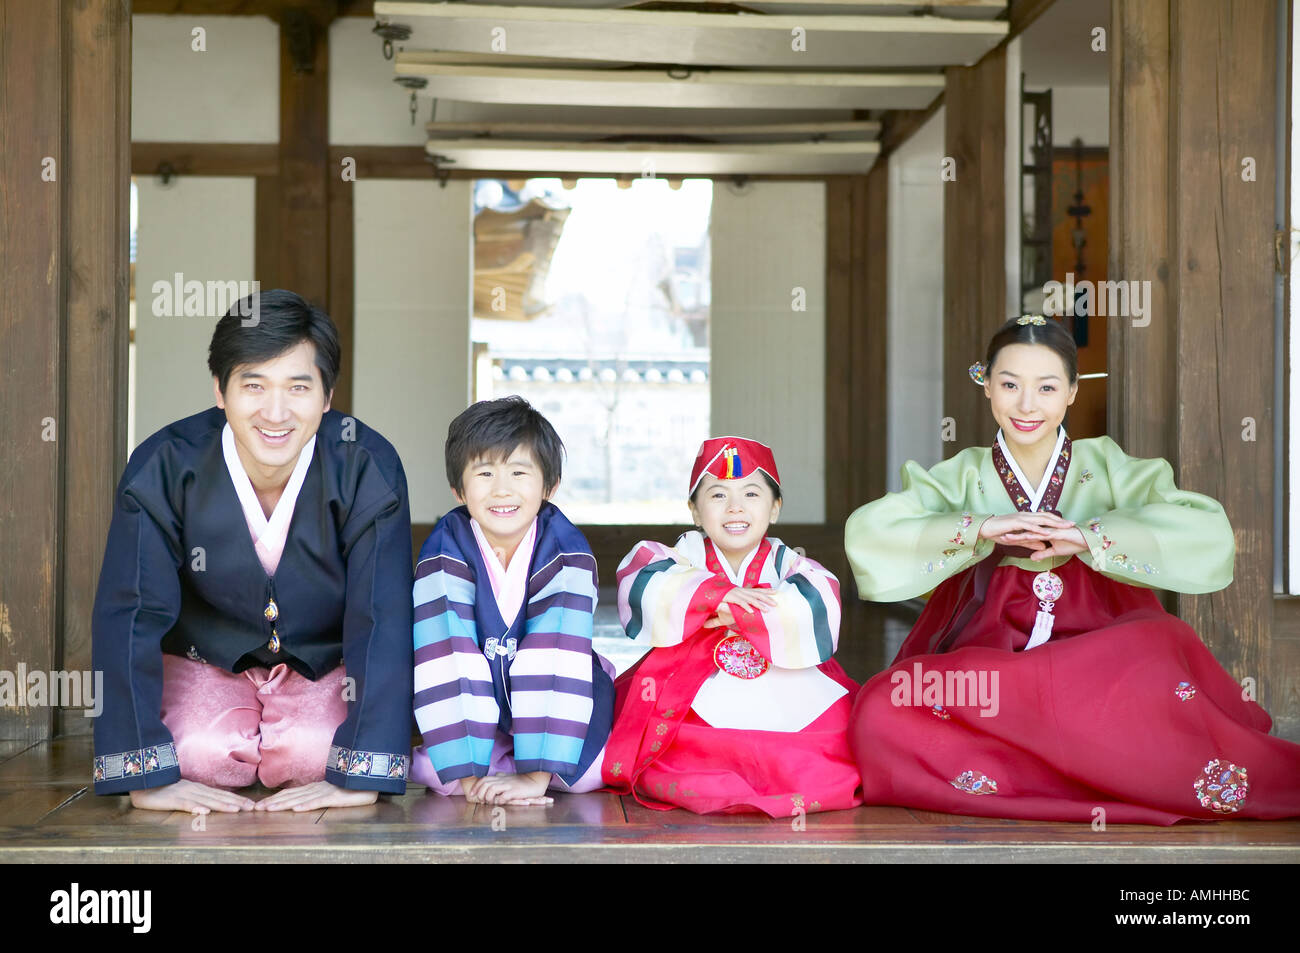 A family in hanbok greet in korean way stock photo 4984251 alamy a family in hanbok greet in korean way kristyandbryce Choice Image